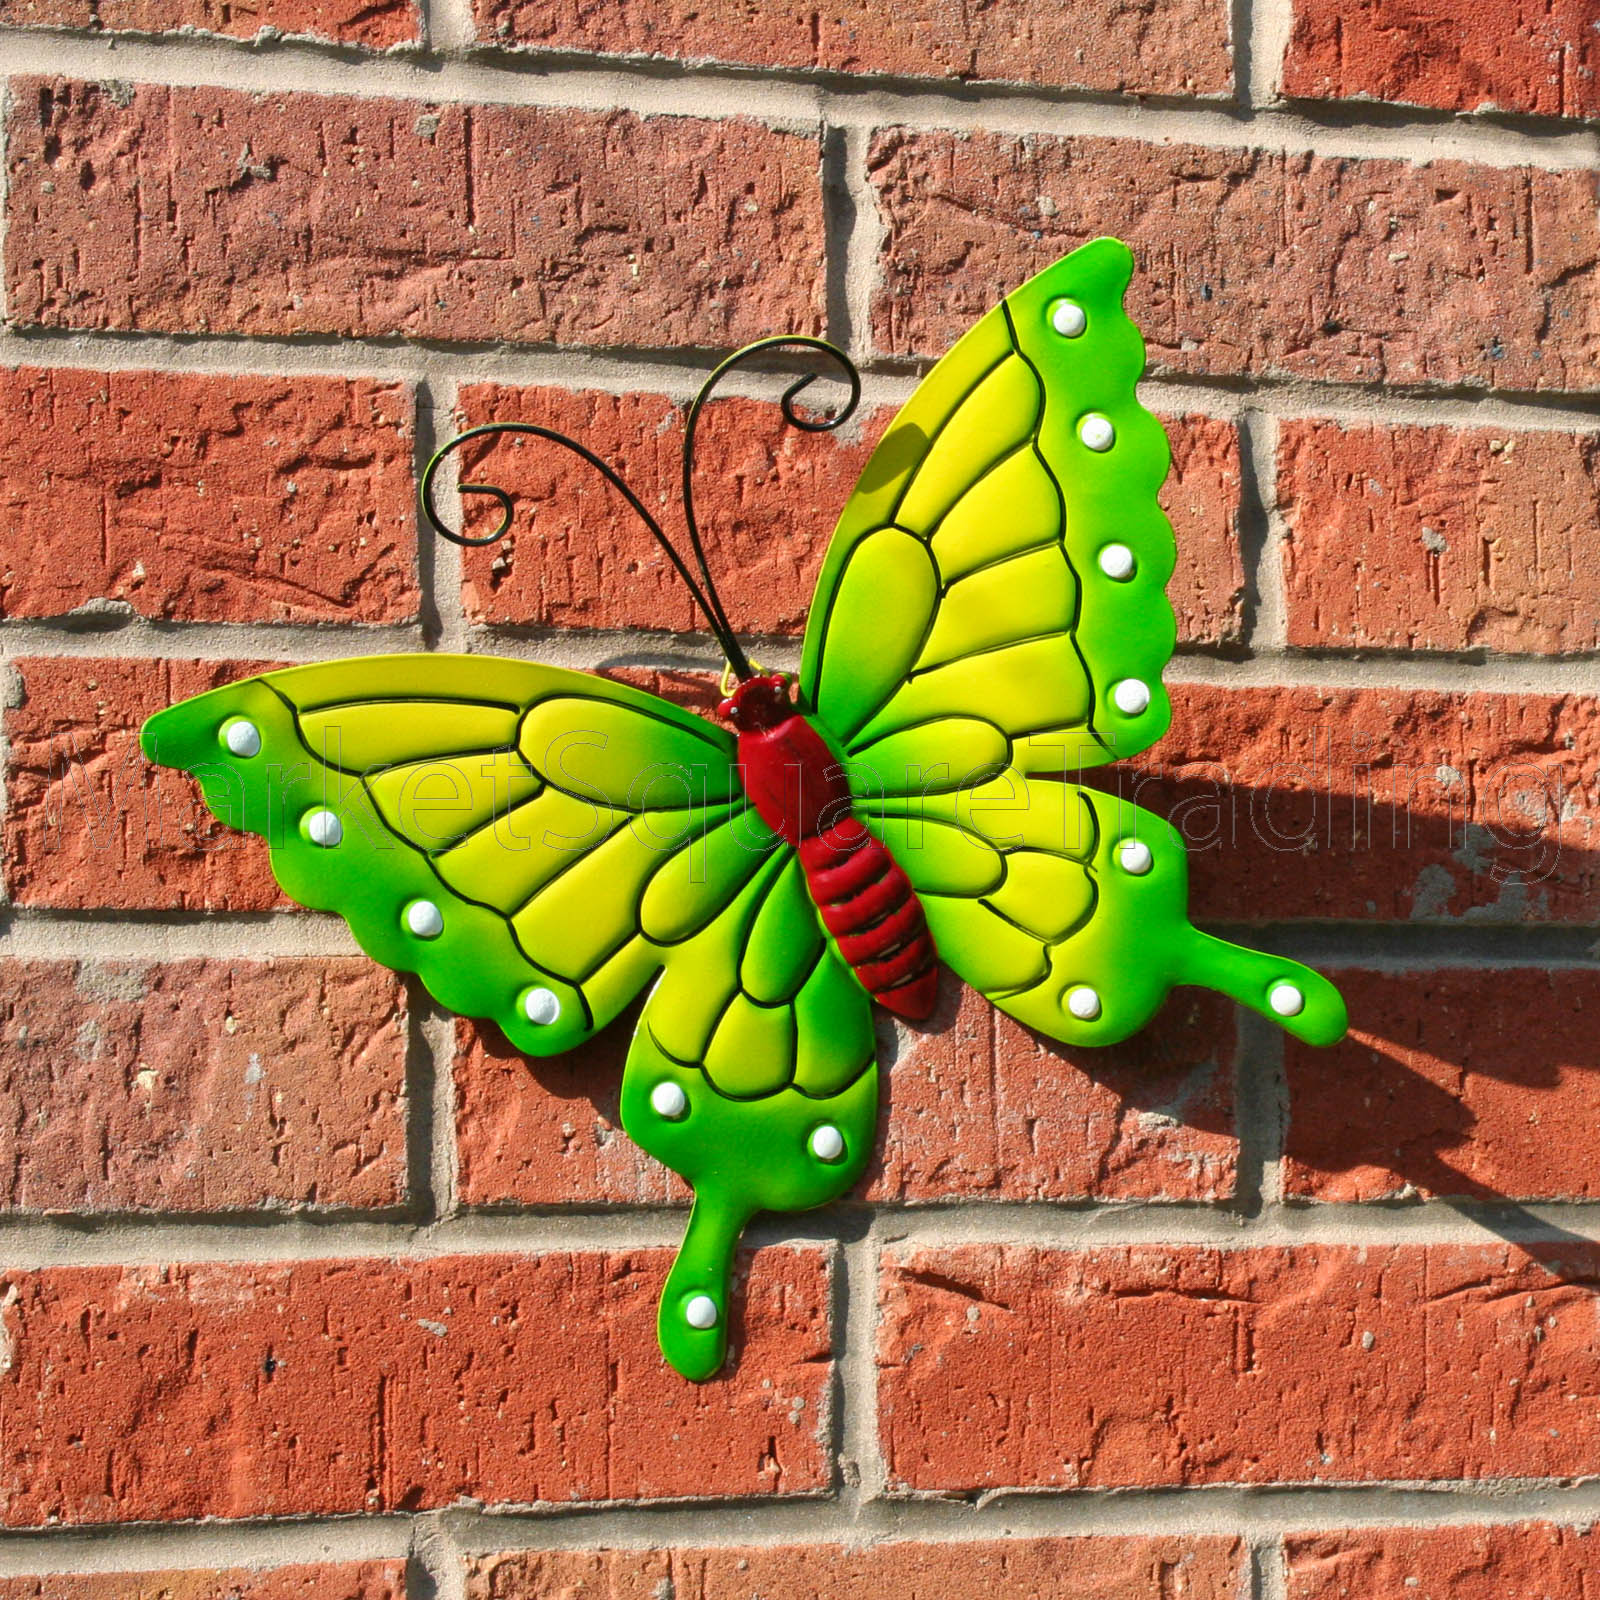 BUTTERFLY LARGE NEW GREEN METAL BUTTERFLIES WALL ART OUTDOOR GARDEN DECORATIO